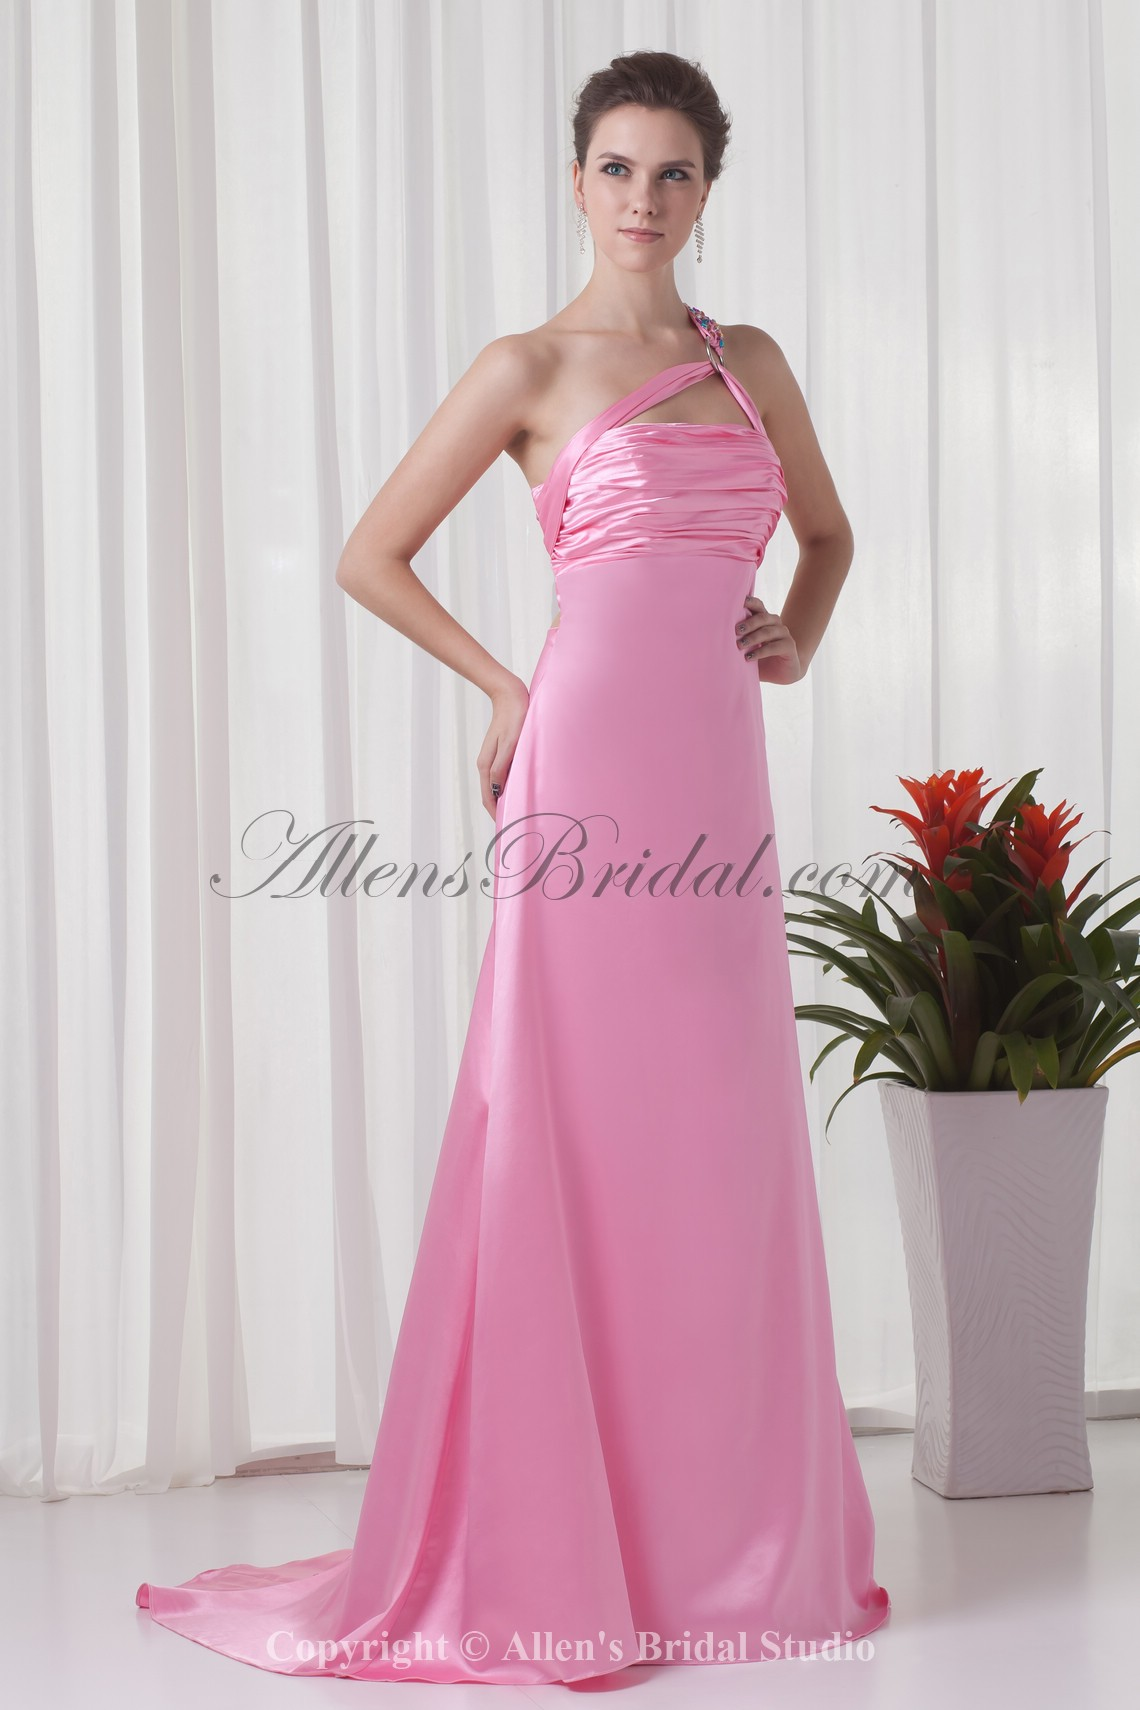 /302-2412/satin-one-shoulder-neckline-a-line-sweep-train-directionally-ruched-prom-dress.jpg